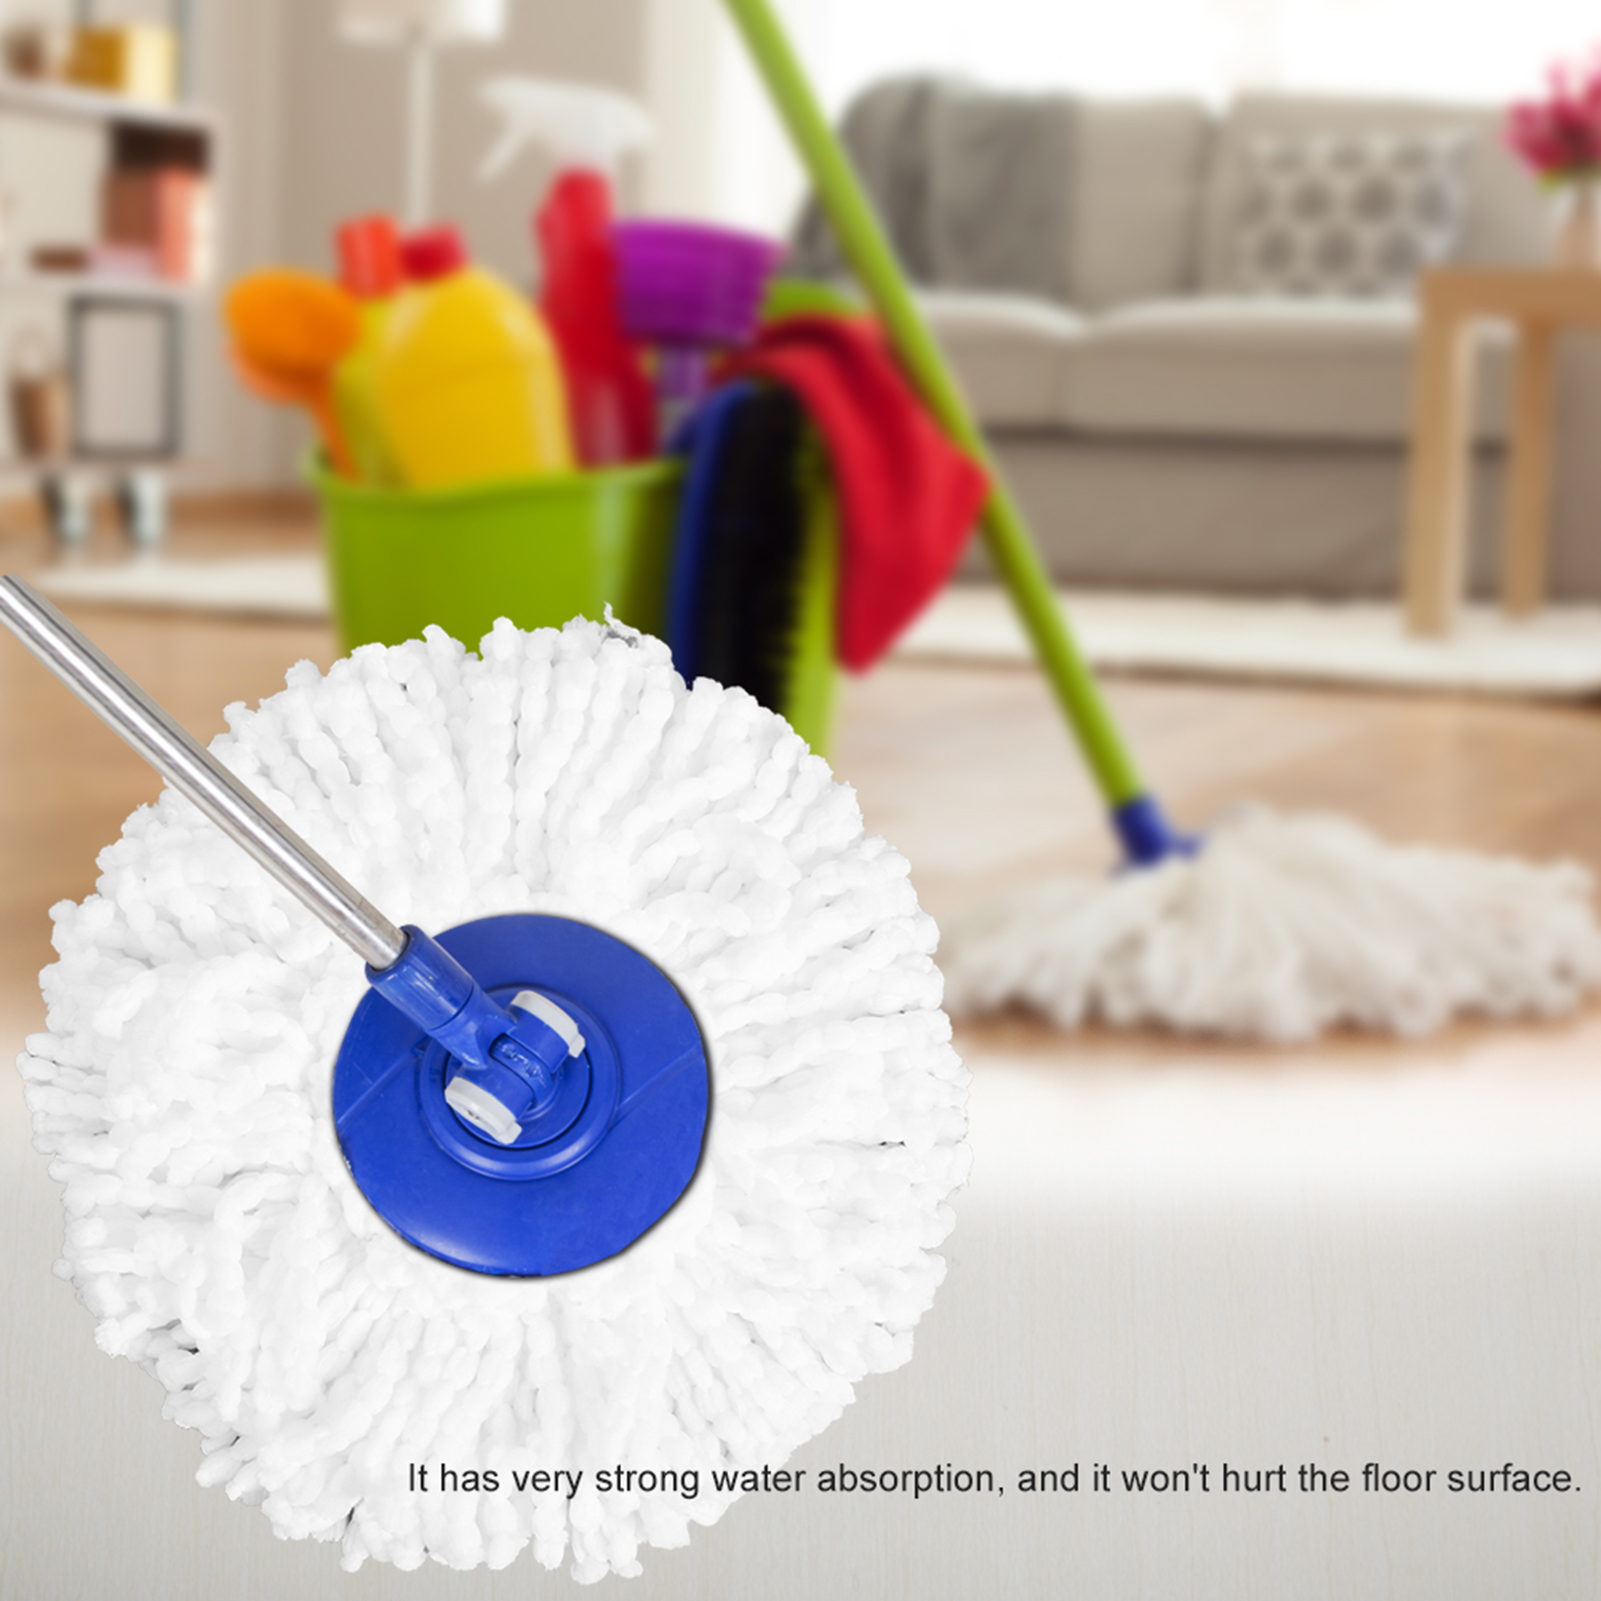 Spinning-Mops-Head-Microfiber-Refill-Rotating-360-Mop-for-Cleaning-AG thumbnail 11